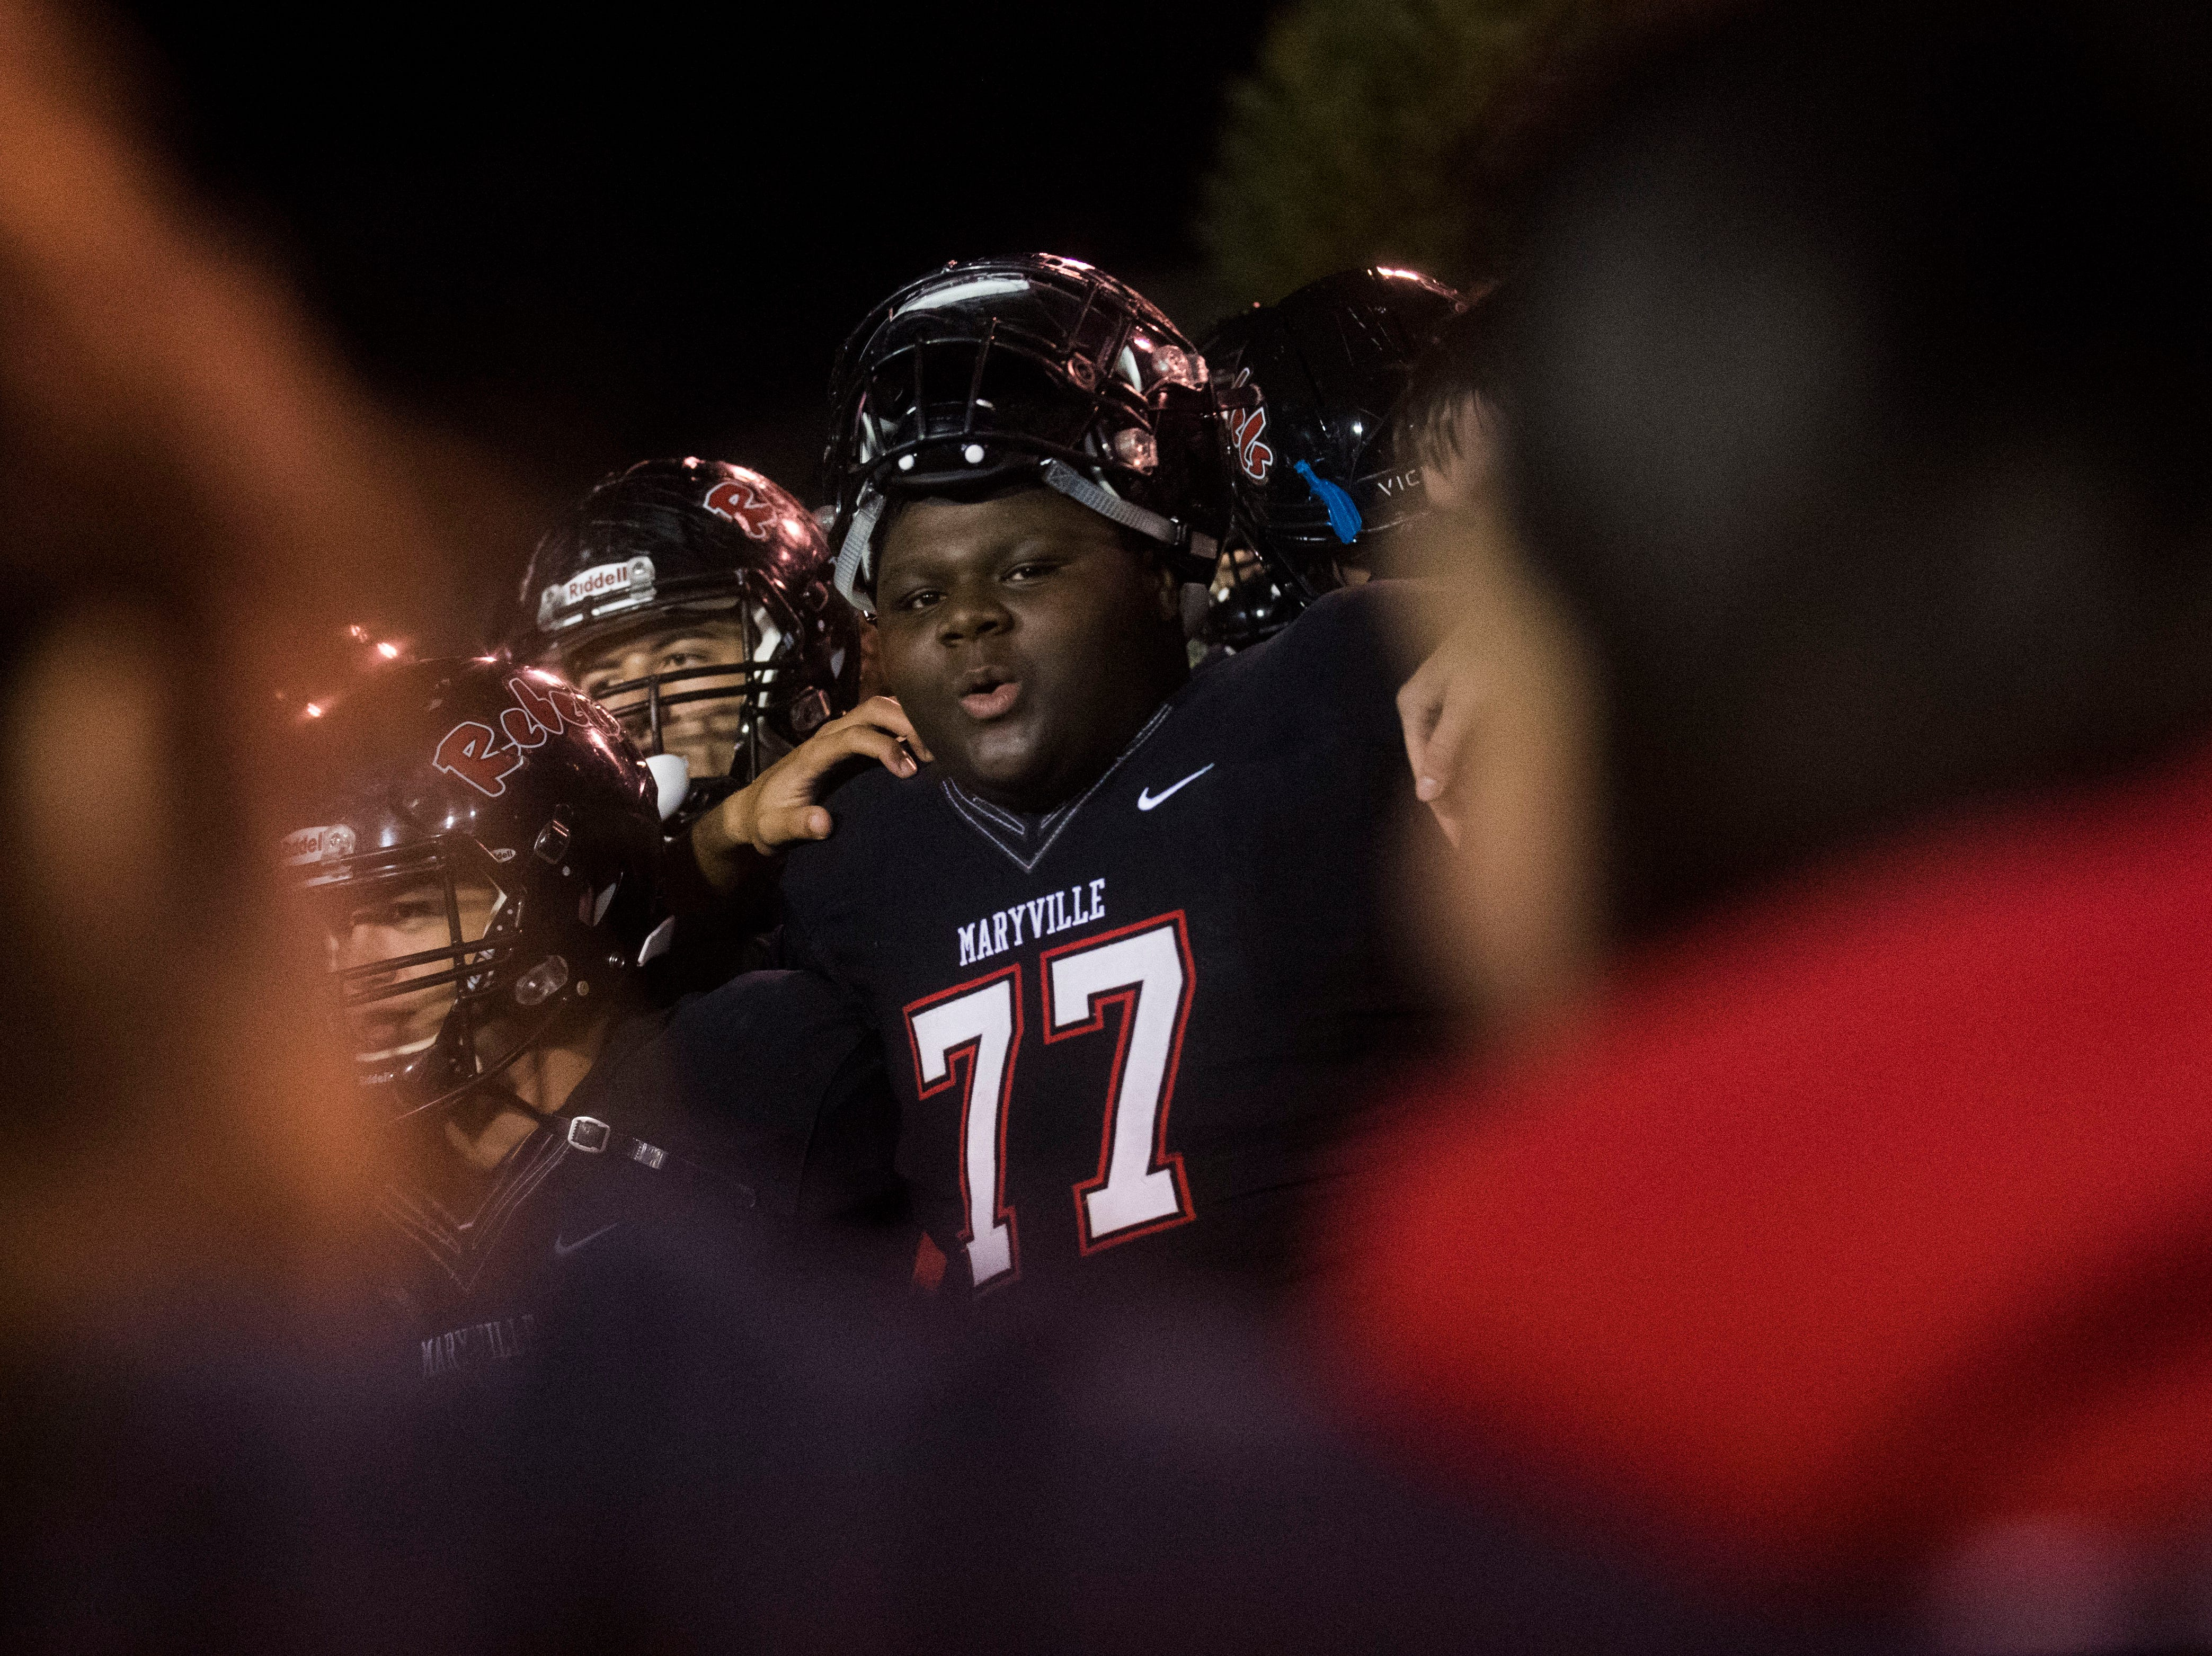 Maryville's Eugene Swinger (77) sings Maryville's almamater with teammates during a first round playoff game between Maryville and Bearden at Maryville, Friday, Nov. 2, 2018. Maryville defeated Bearden 28-7.